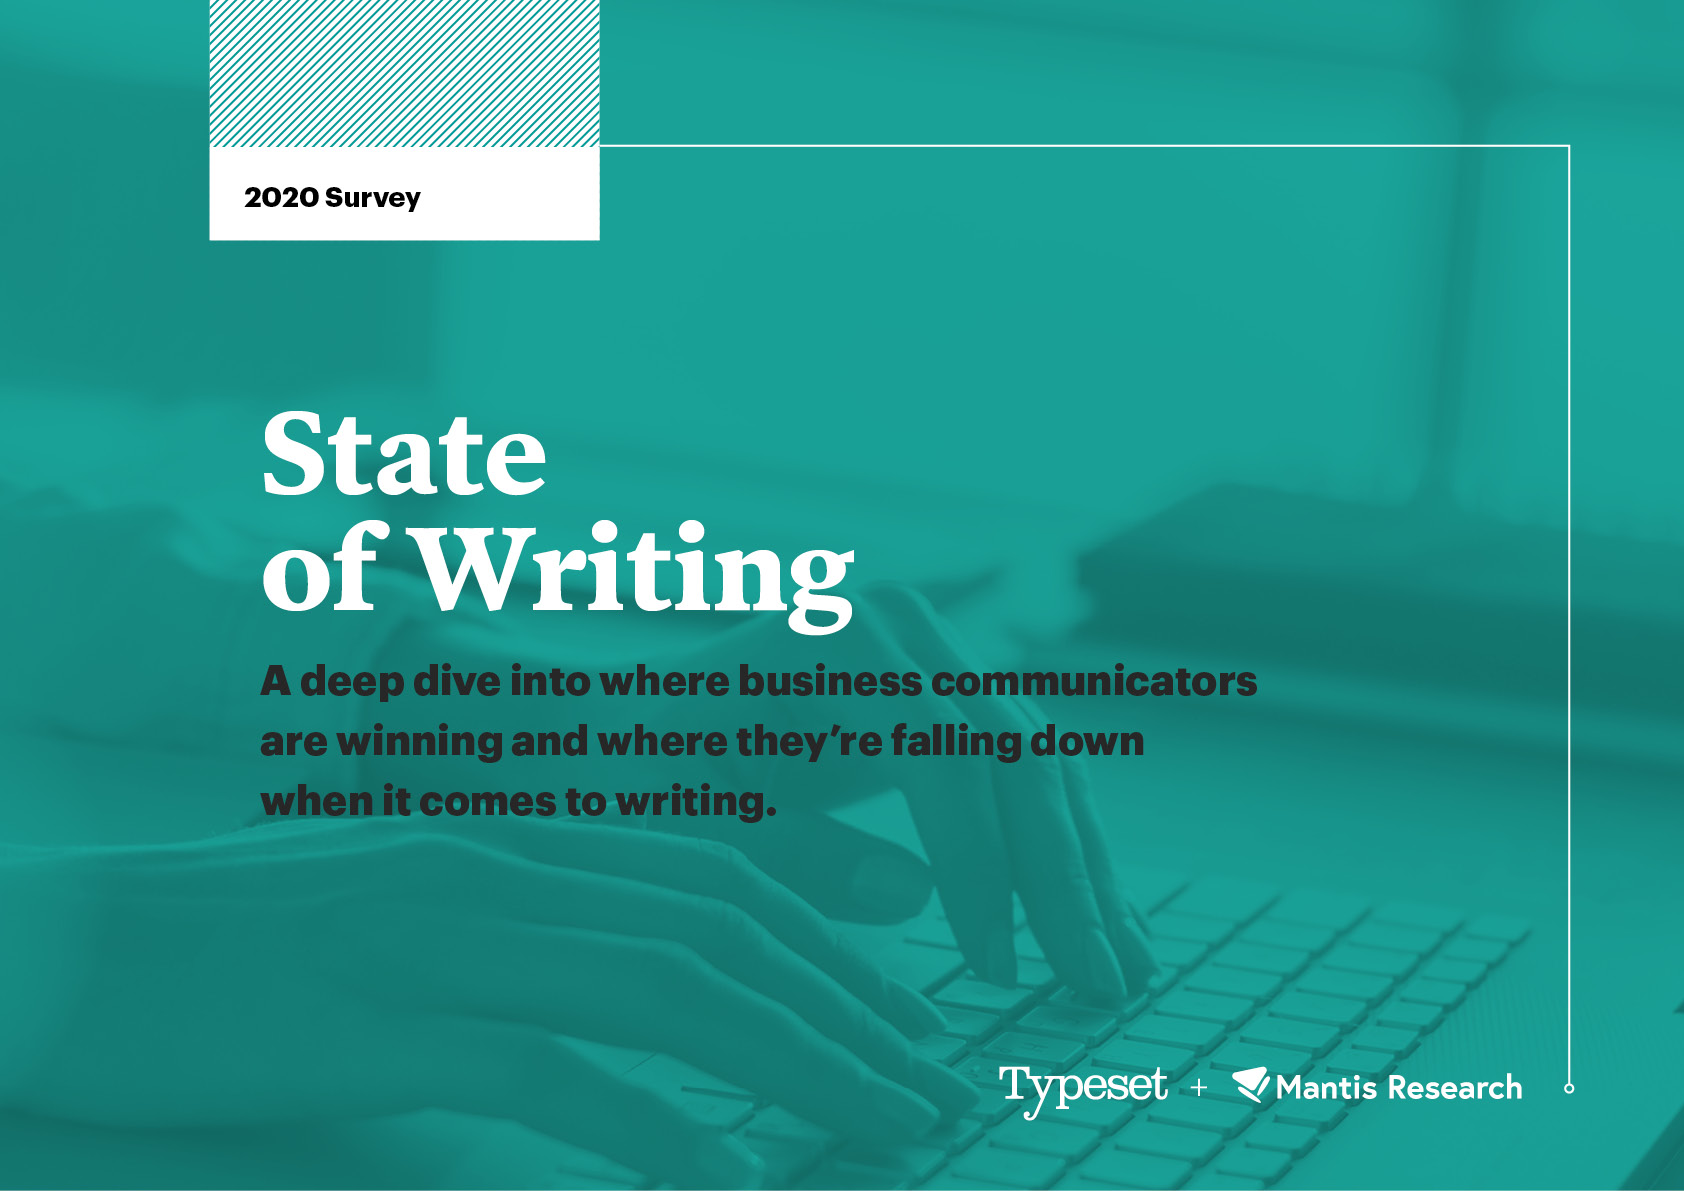 State Of Writing 2020 survey report